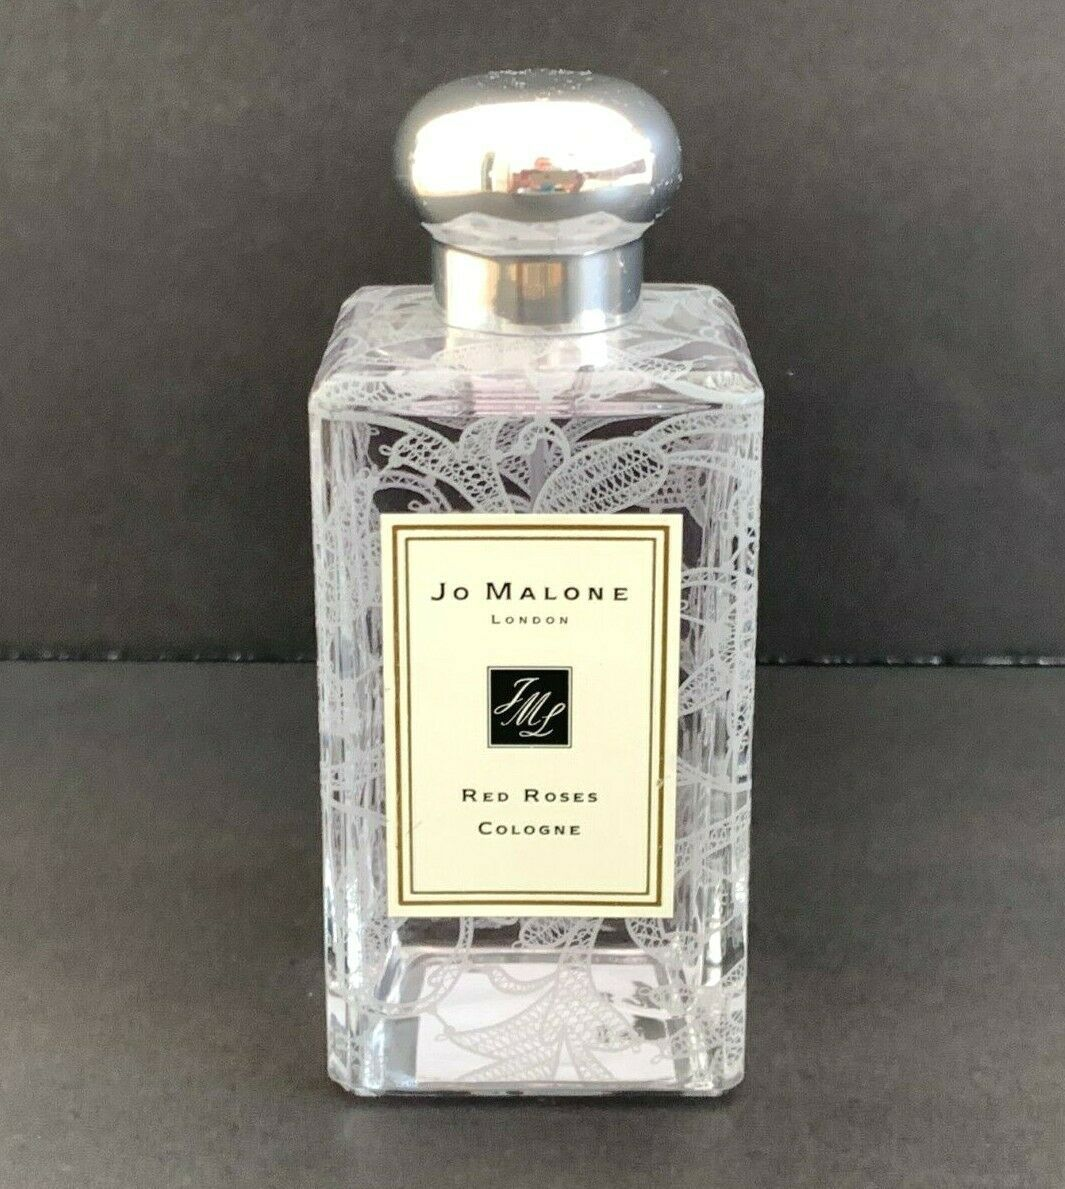 Primary image for Jo Malone London Red Roses Cologne 100 ml 3.4 oz Spray Bottle